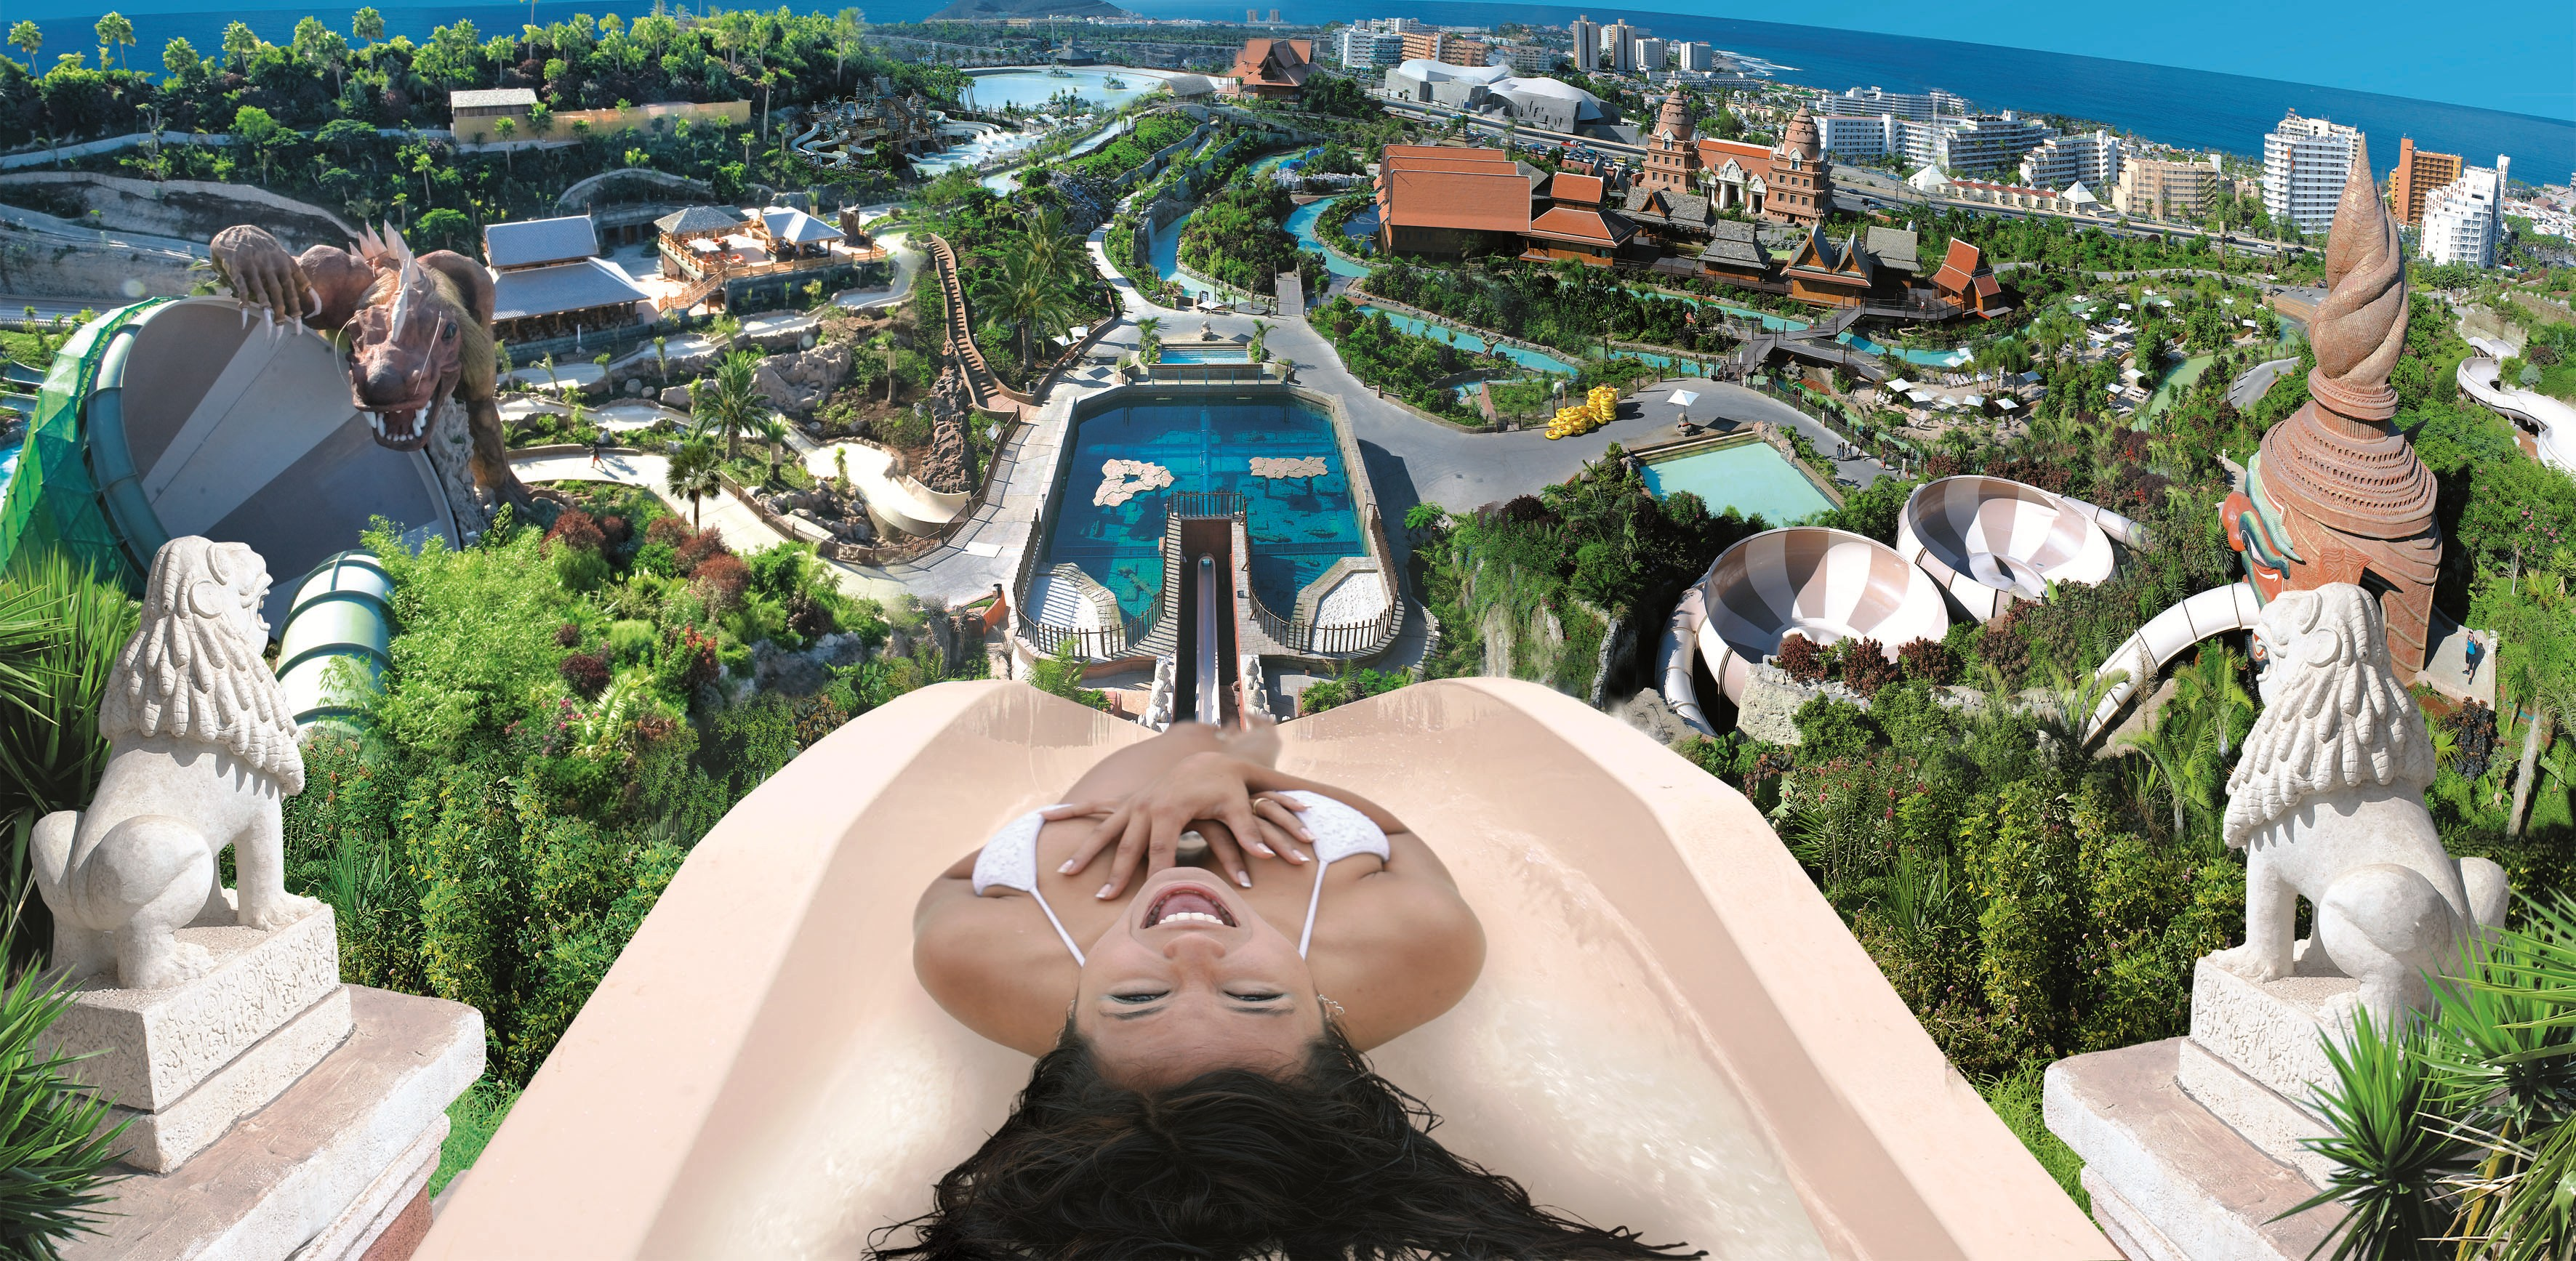 15_most_extreme_water_slides_in_the_world_14